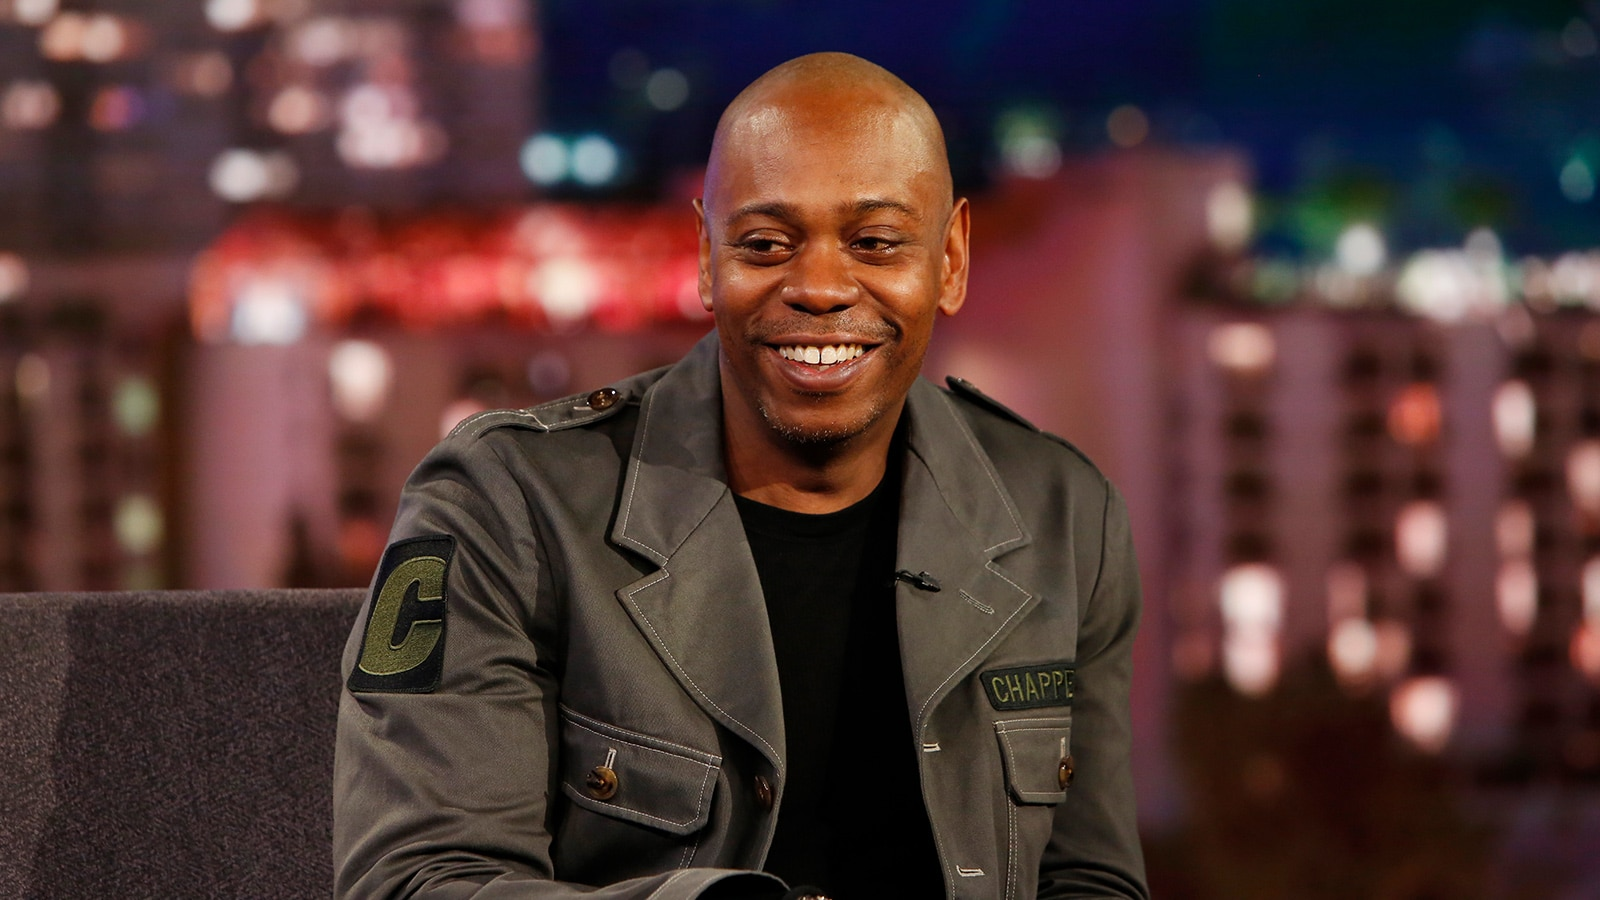 Watch Access Interview: Dave Chapelle Skewers Trump Fans ...Dave Chappelle